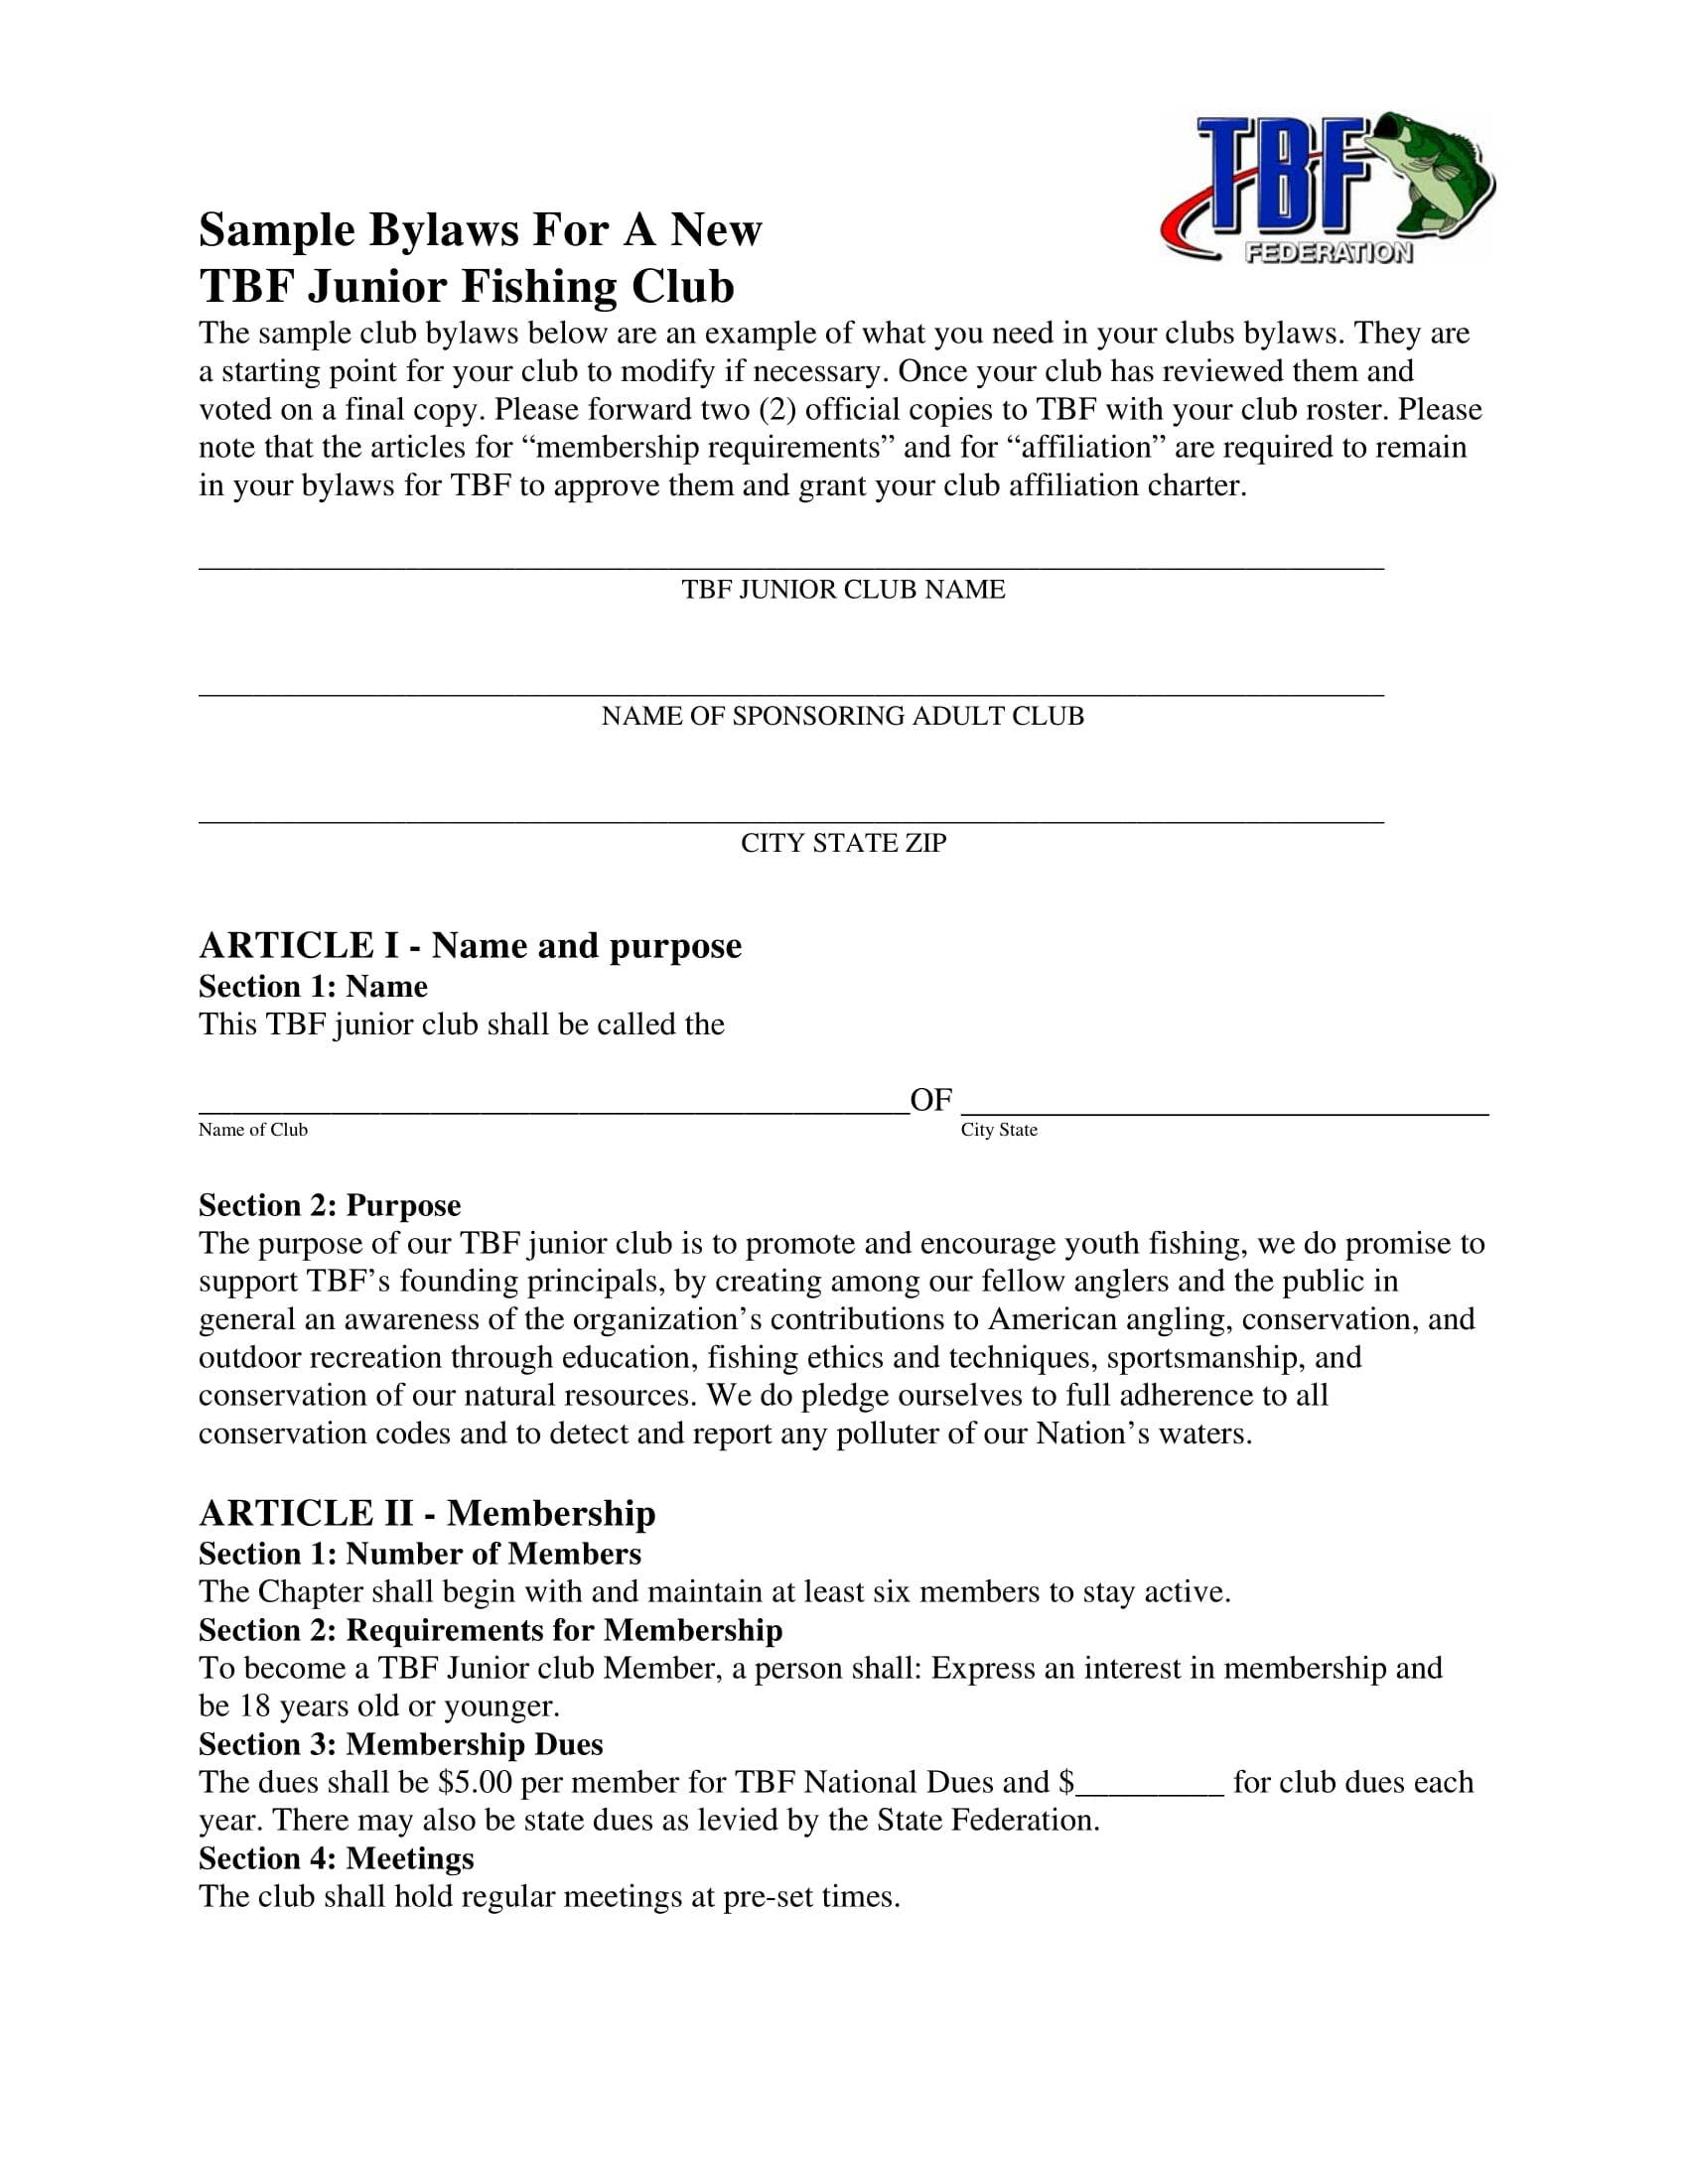 junior fishing club bylaw sample